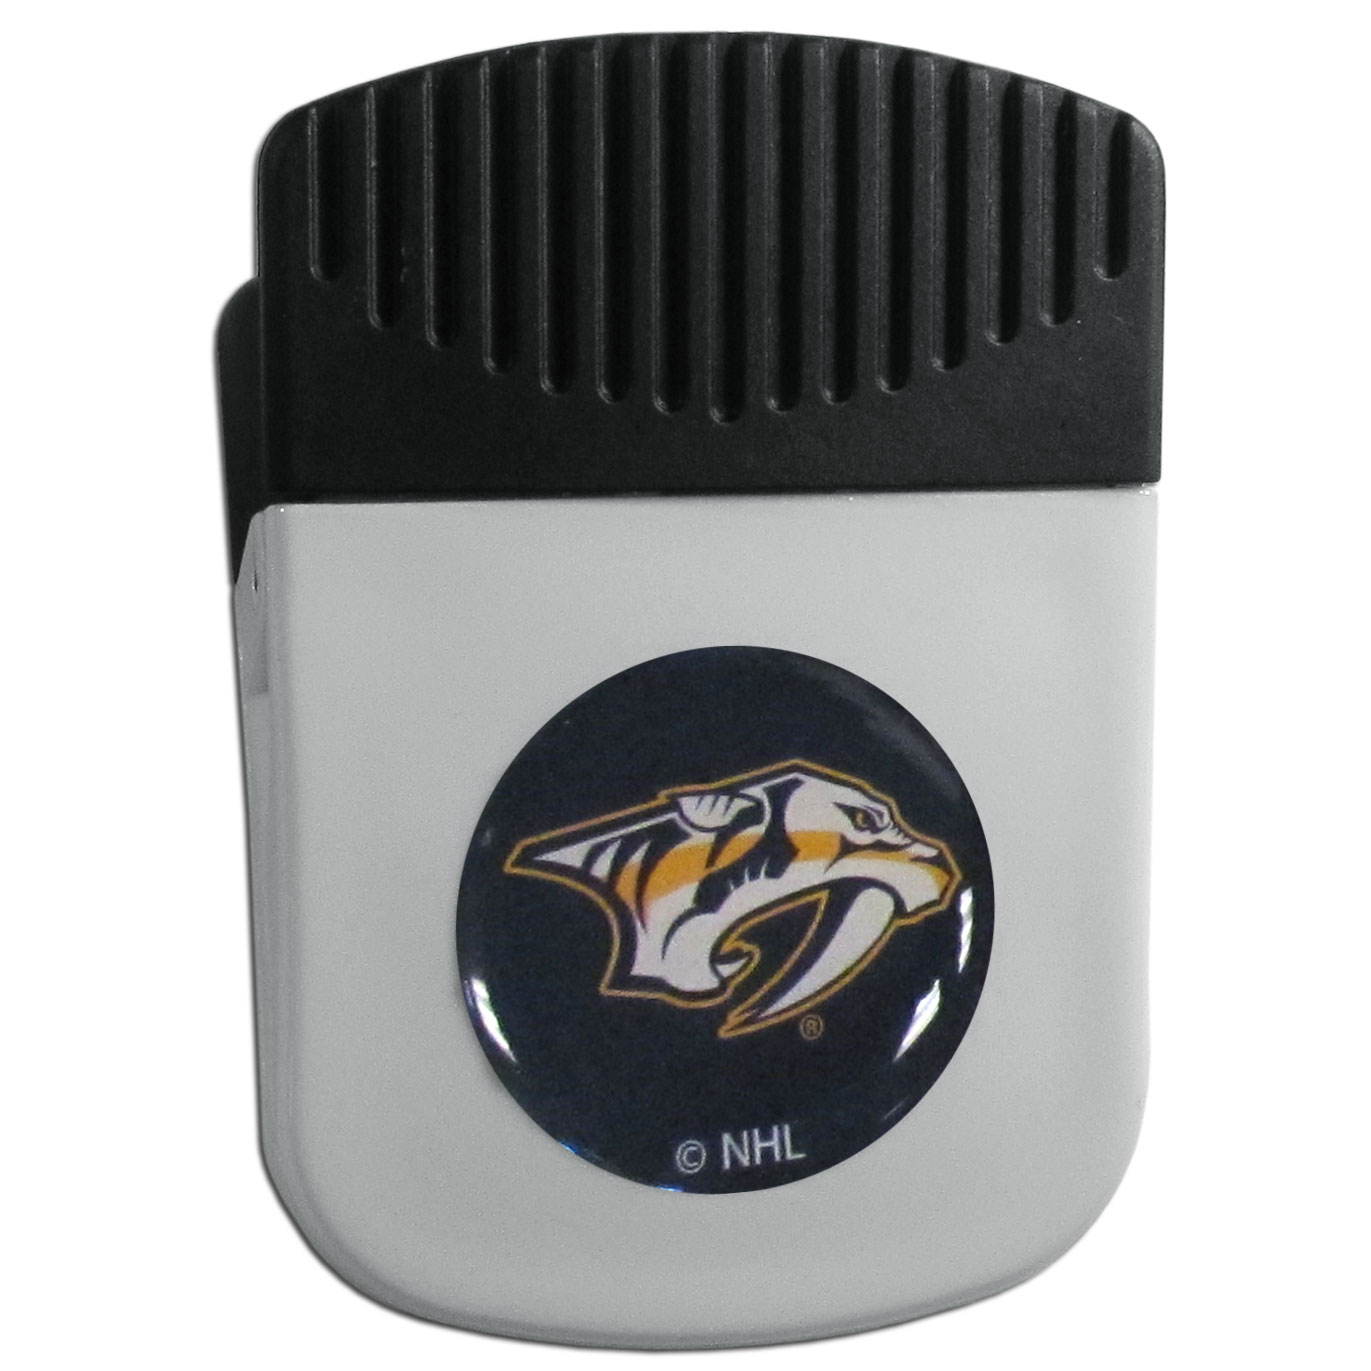 Nashville Predators® Chip Clip Magnet - Use this attractive clip magnet to hold memos, photos or appointment cards on the fridge or take it down keep use it to clip bags shut. The magnet features a domed Nashville Predators® logo.